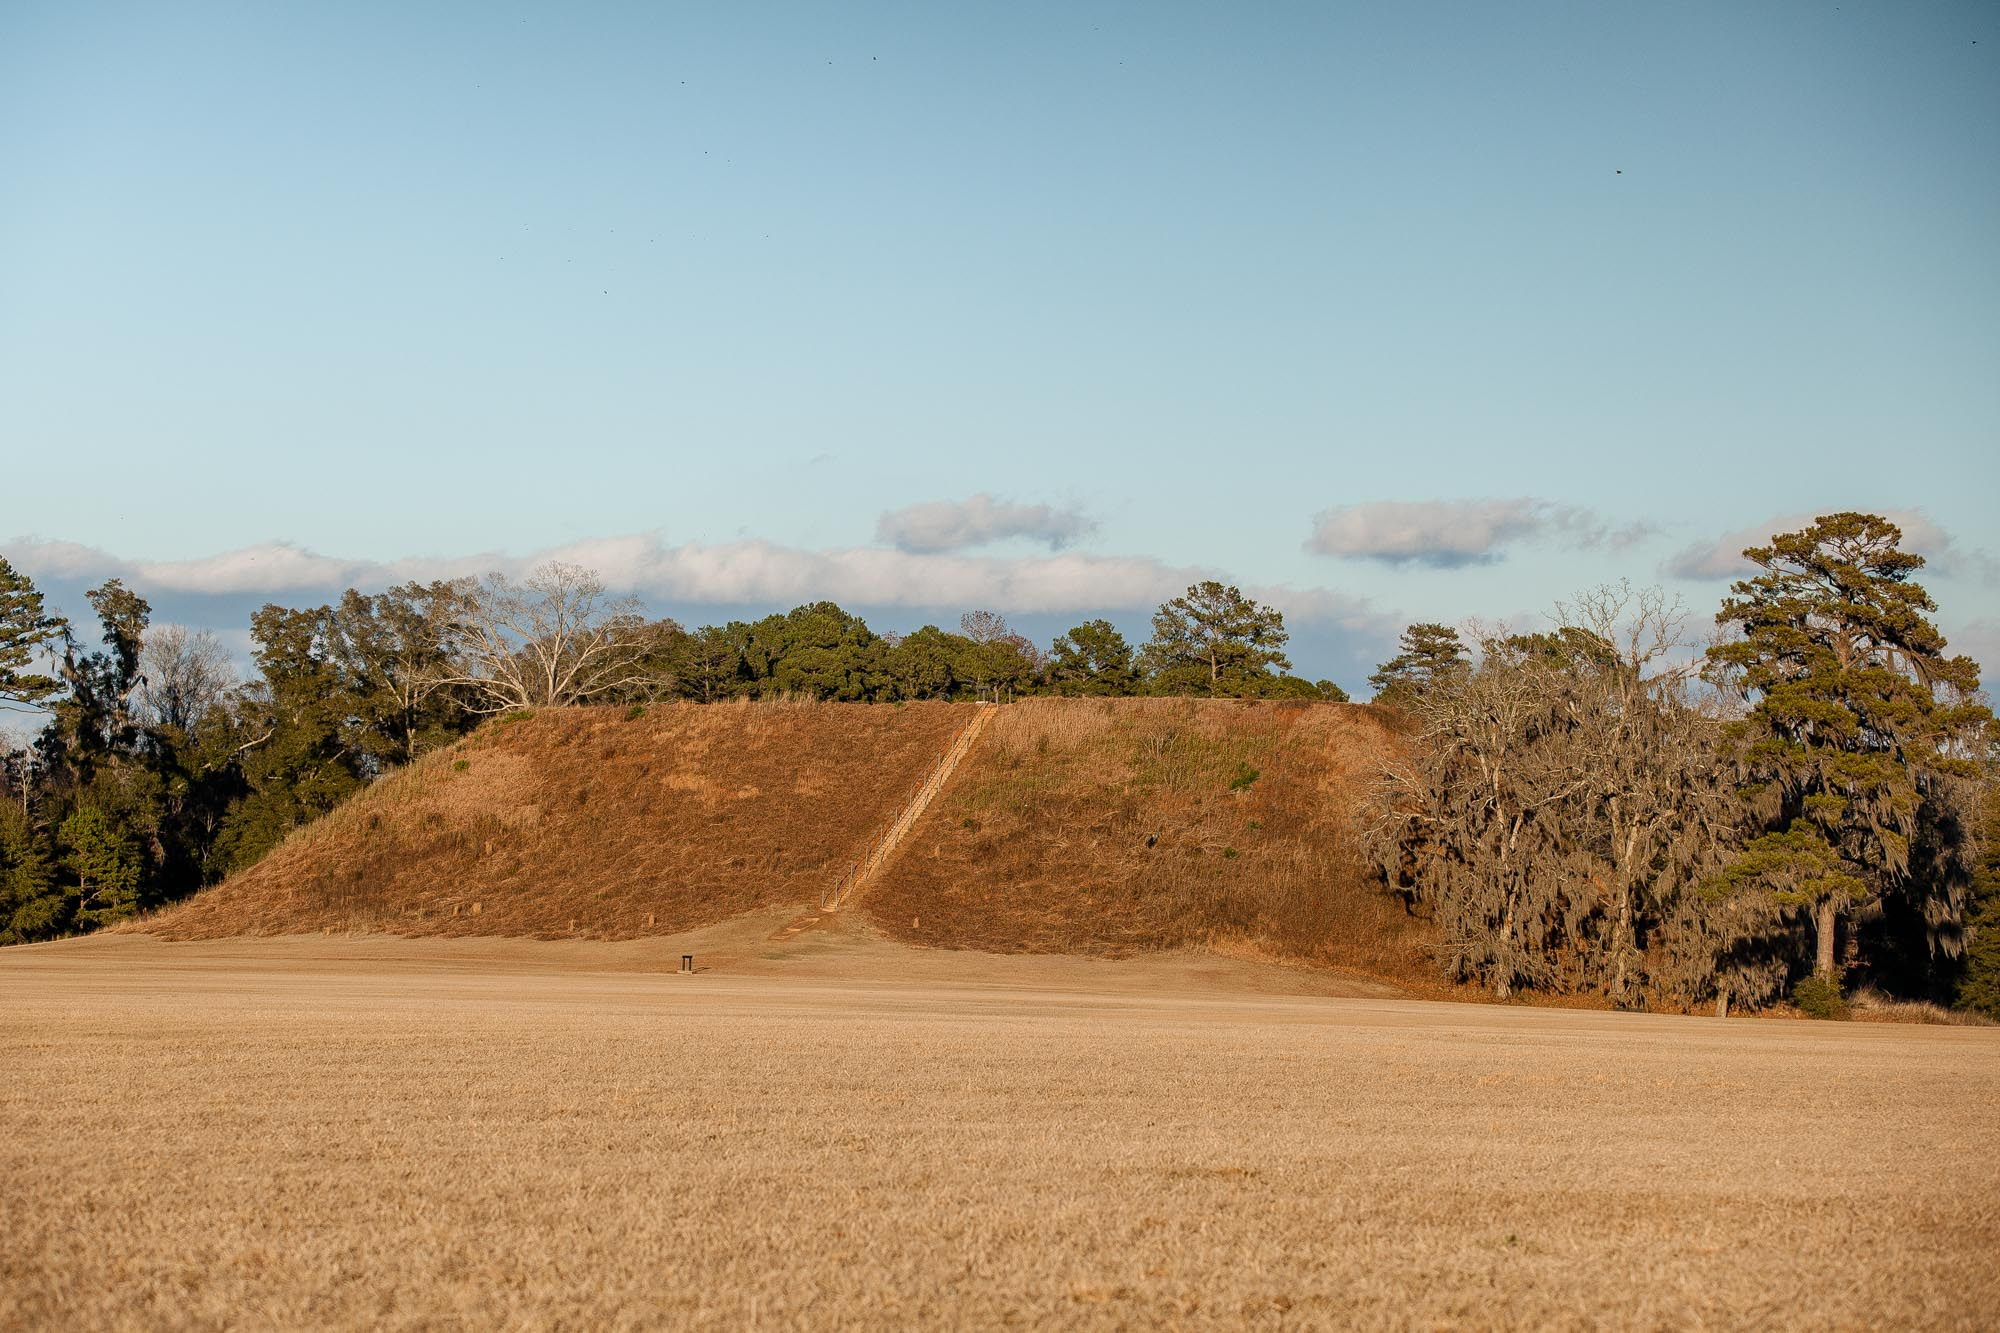 This Historically Significant Park Is The Oldest And Largest Woodland Indian Site In The Southeastern United States, Occupied By Indians From 350 To 750 A.D. Georgia's Oldest Great Temple Mound, Standing 57 Feet High, Dominates Two Smaller Burial Mounds And Several Ceremonial Mounds.